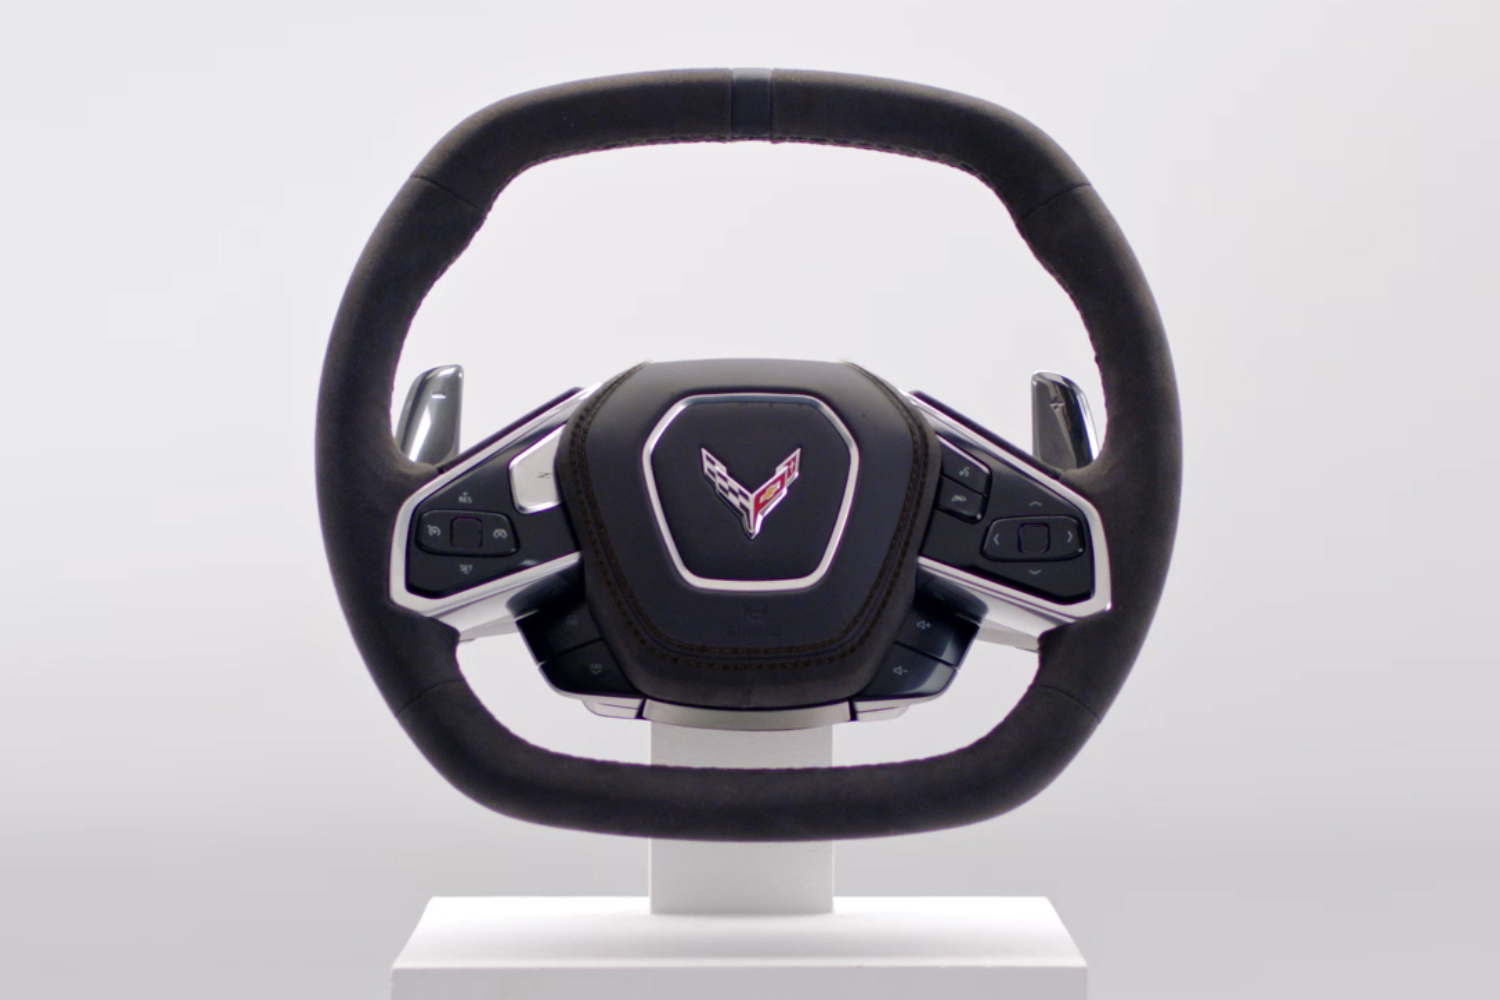 Chevrolet releases pics of the C8's steering wheel thumbnail